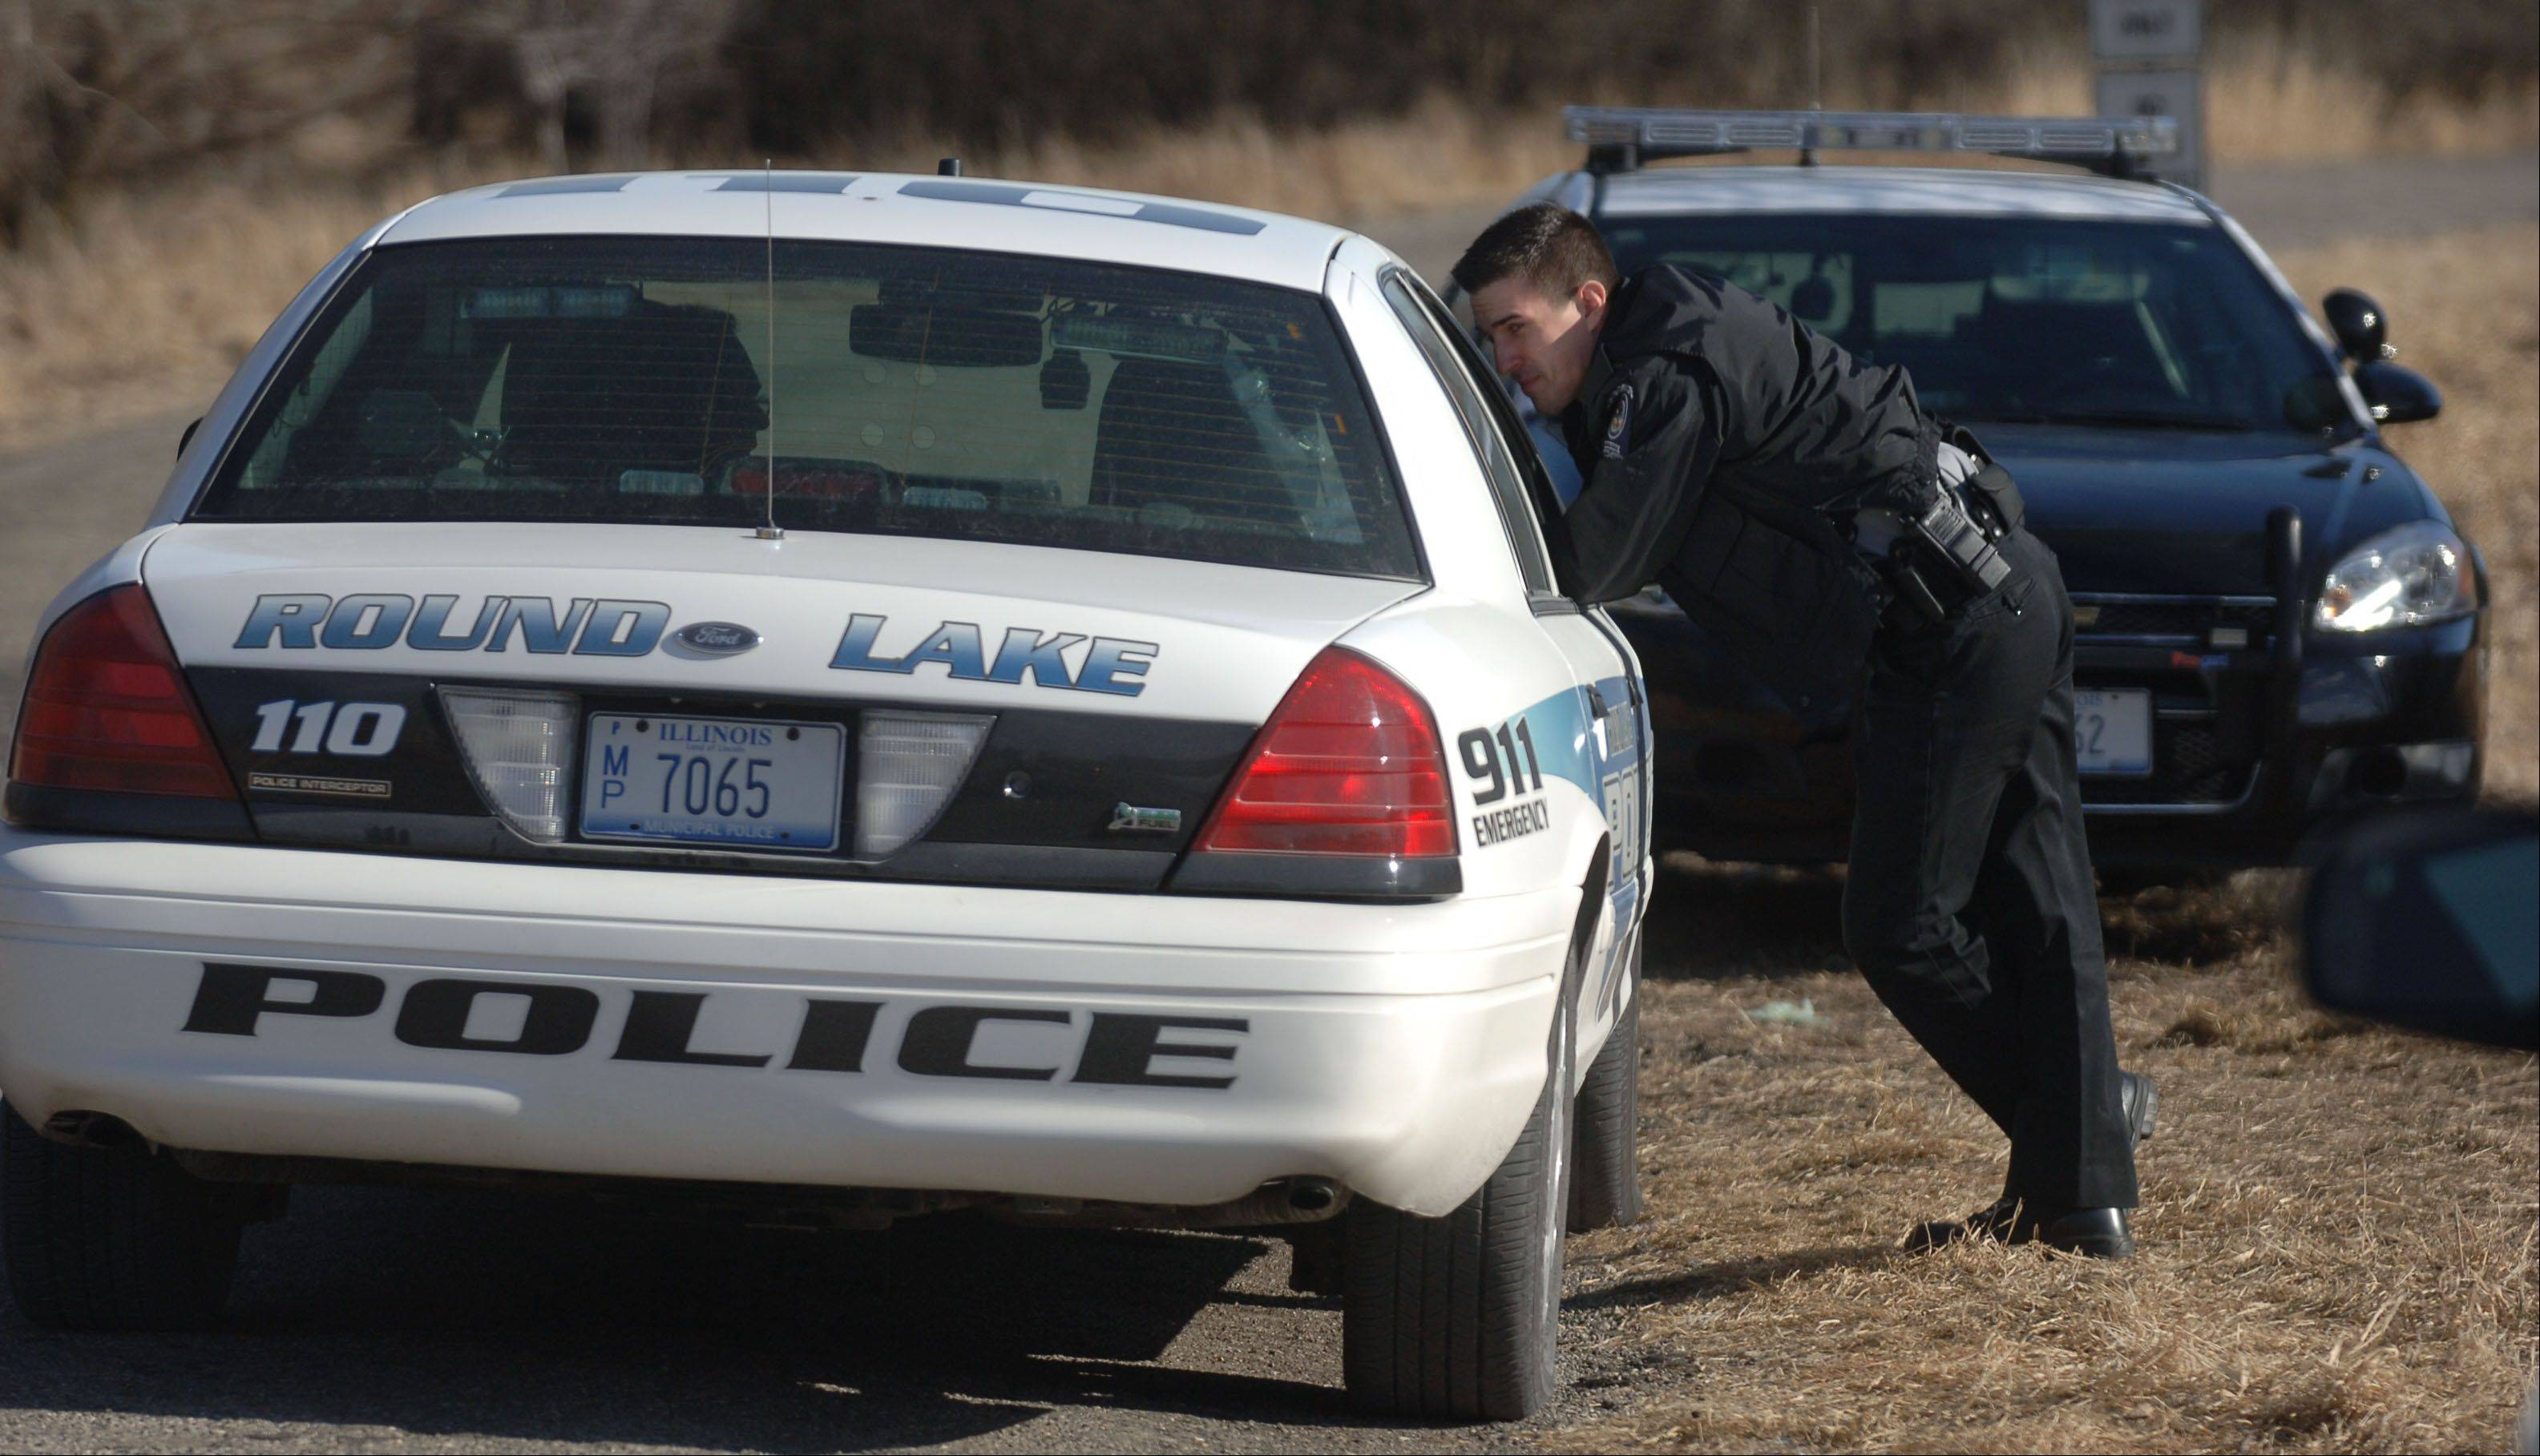 Police on the scene in Round Lake Park where the body of a 20-year-old Grayslake man was found Tuesday near Campbell Airport in Round Lake Park.